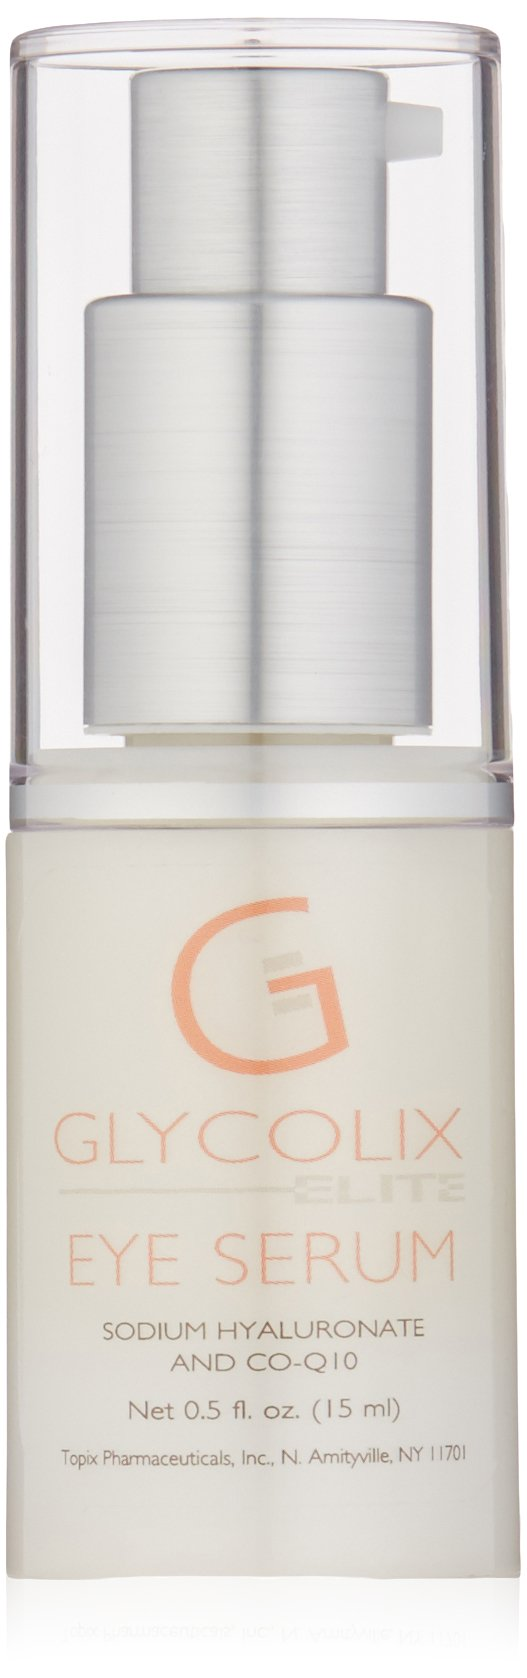 Glycolix Elite Eye Serum, 0.5 Fl Oz